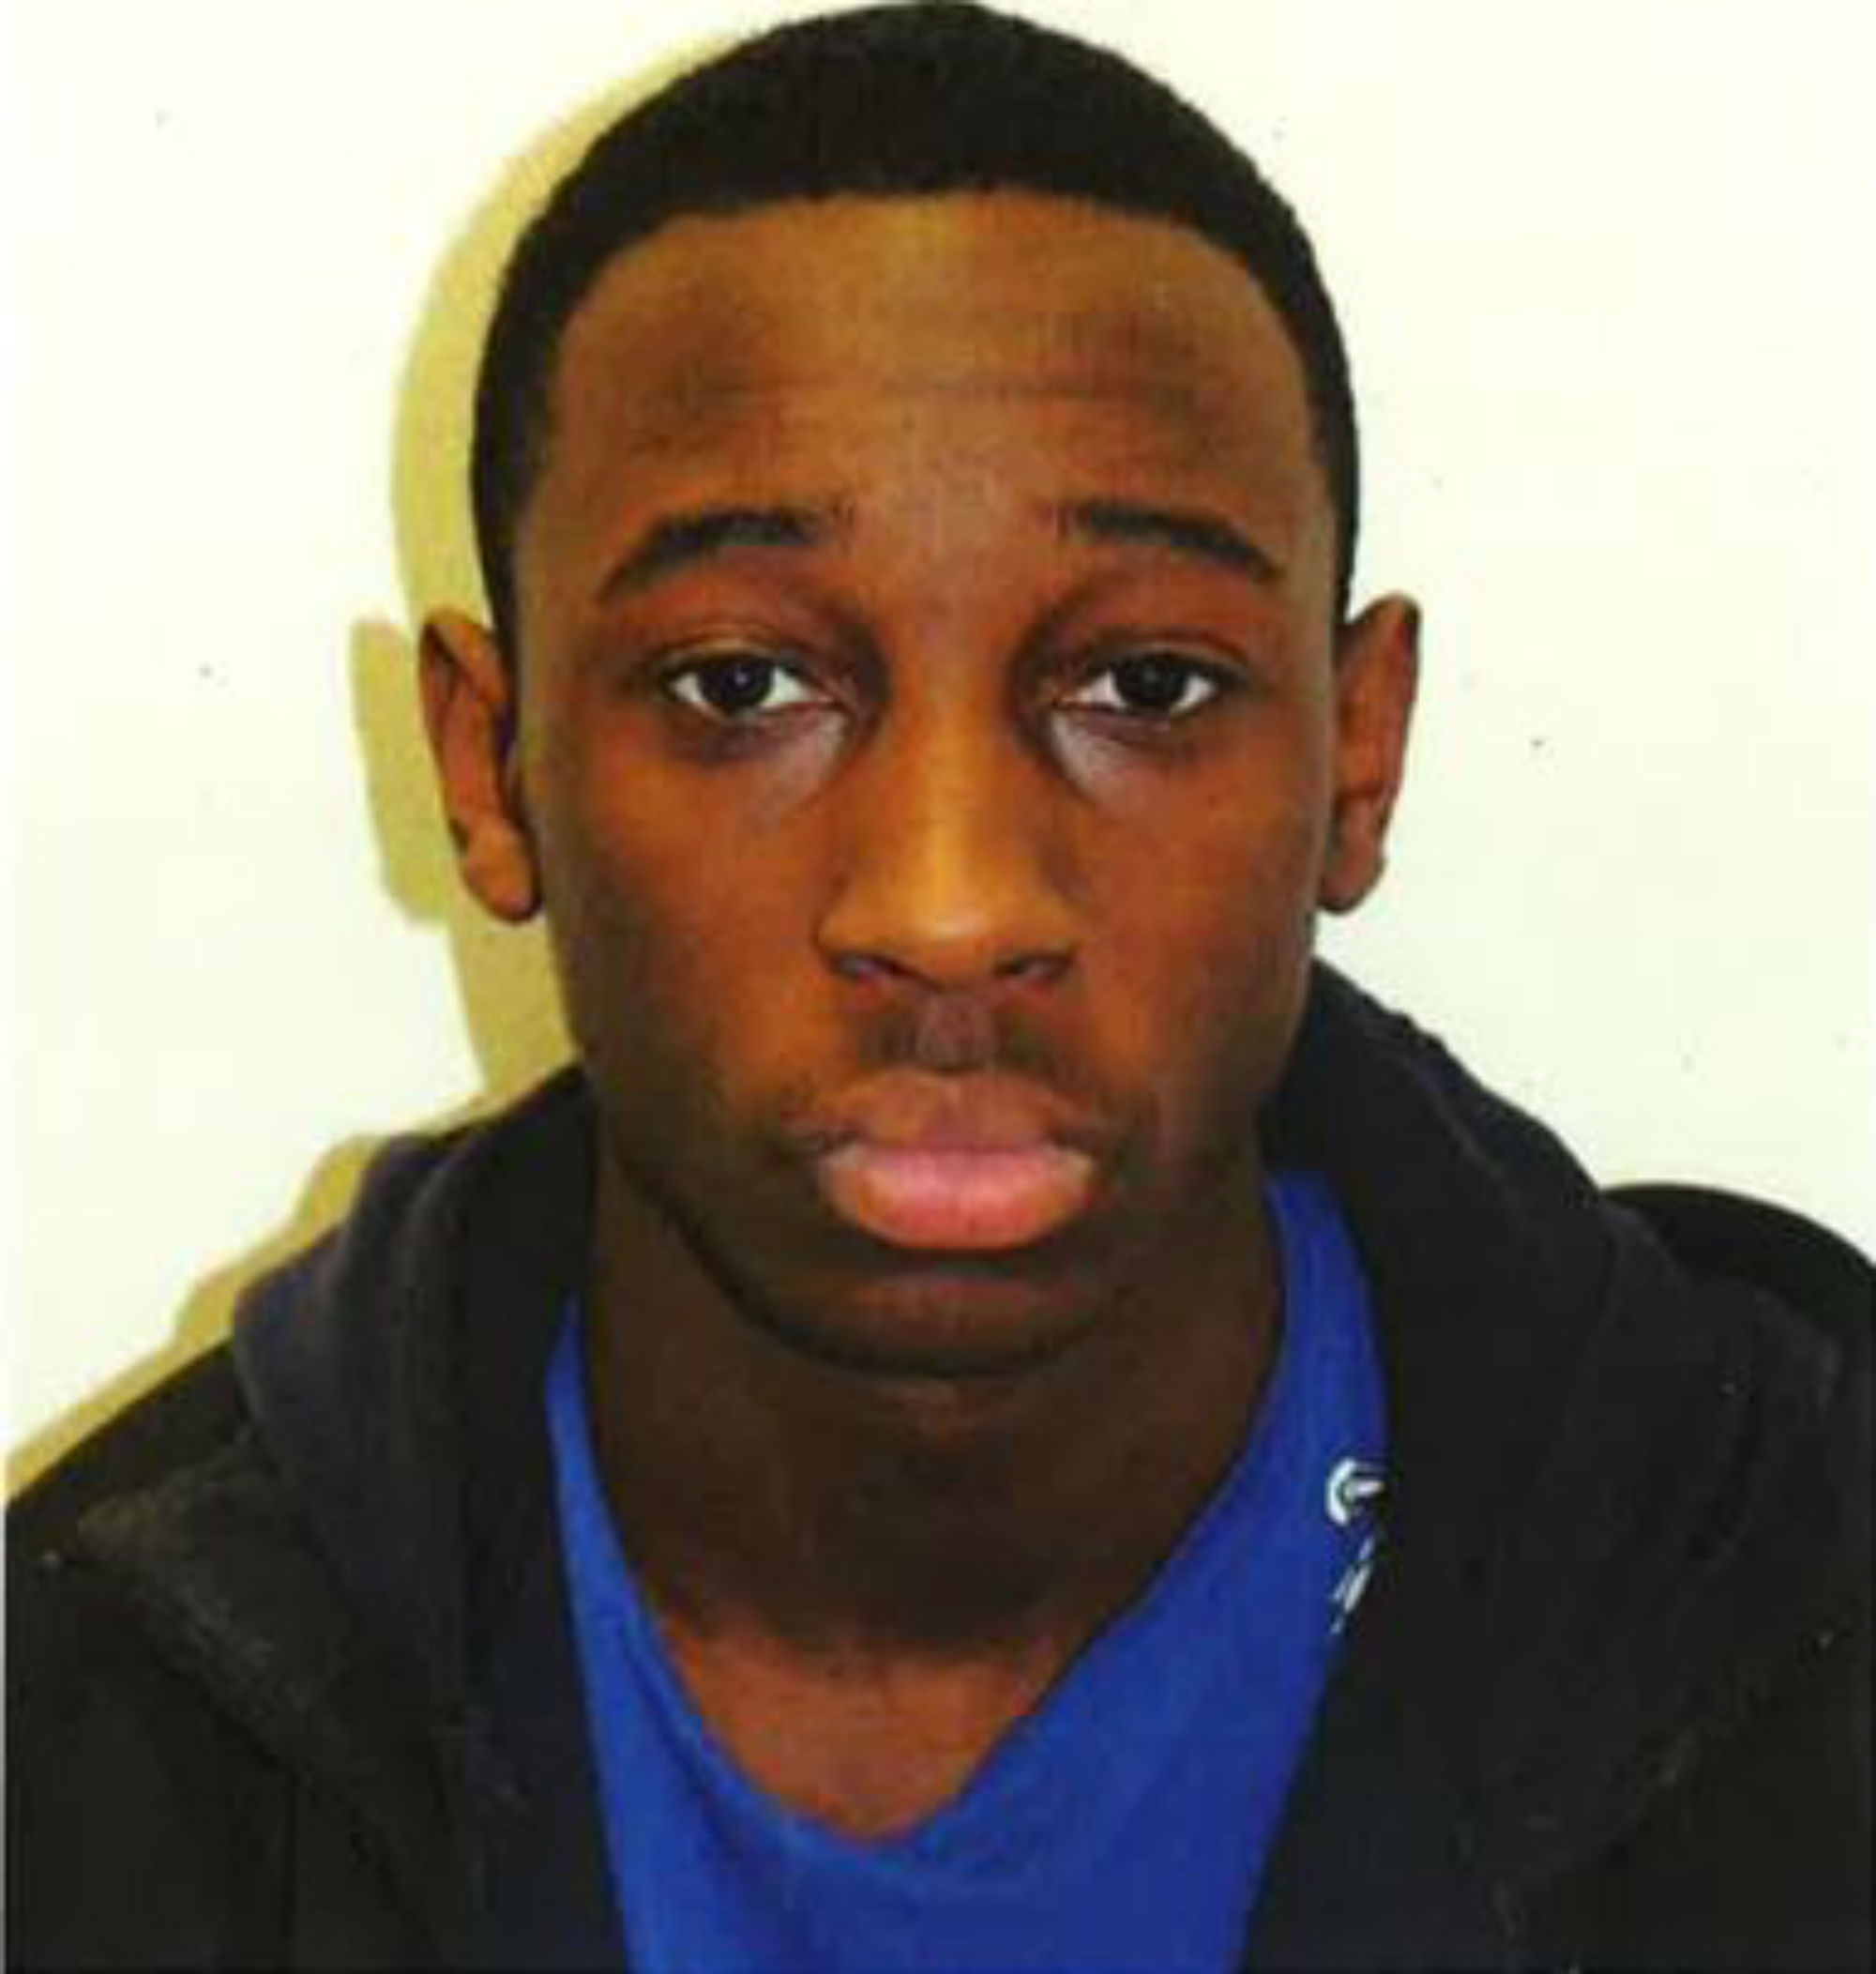 Named and shamed: Rimel Hanchard who stabbed another teenager three times